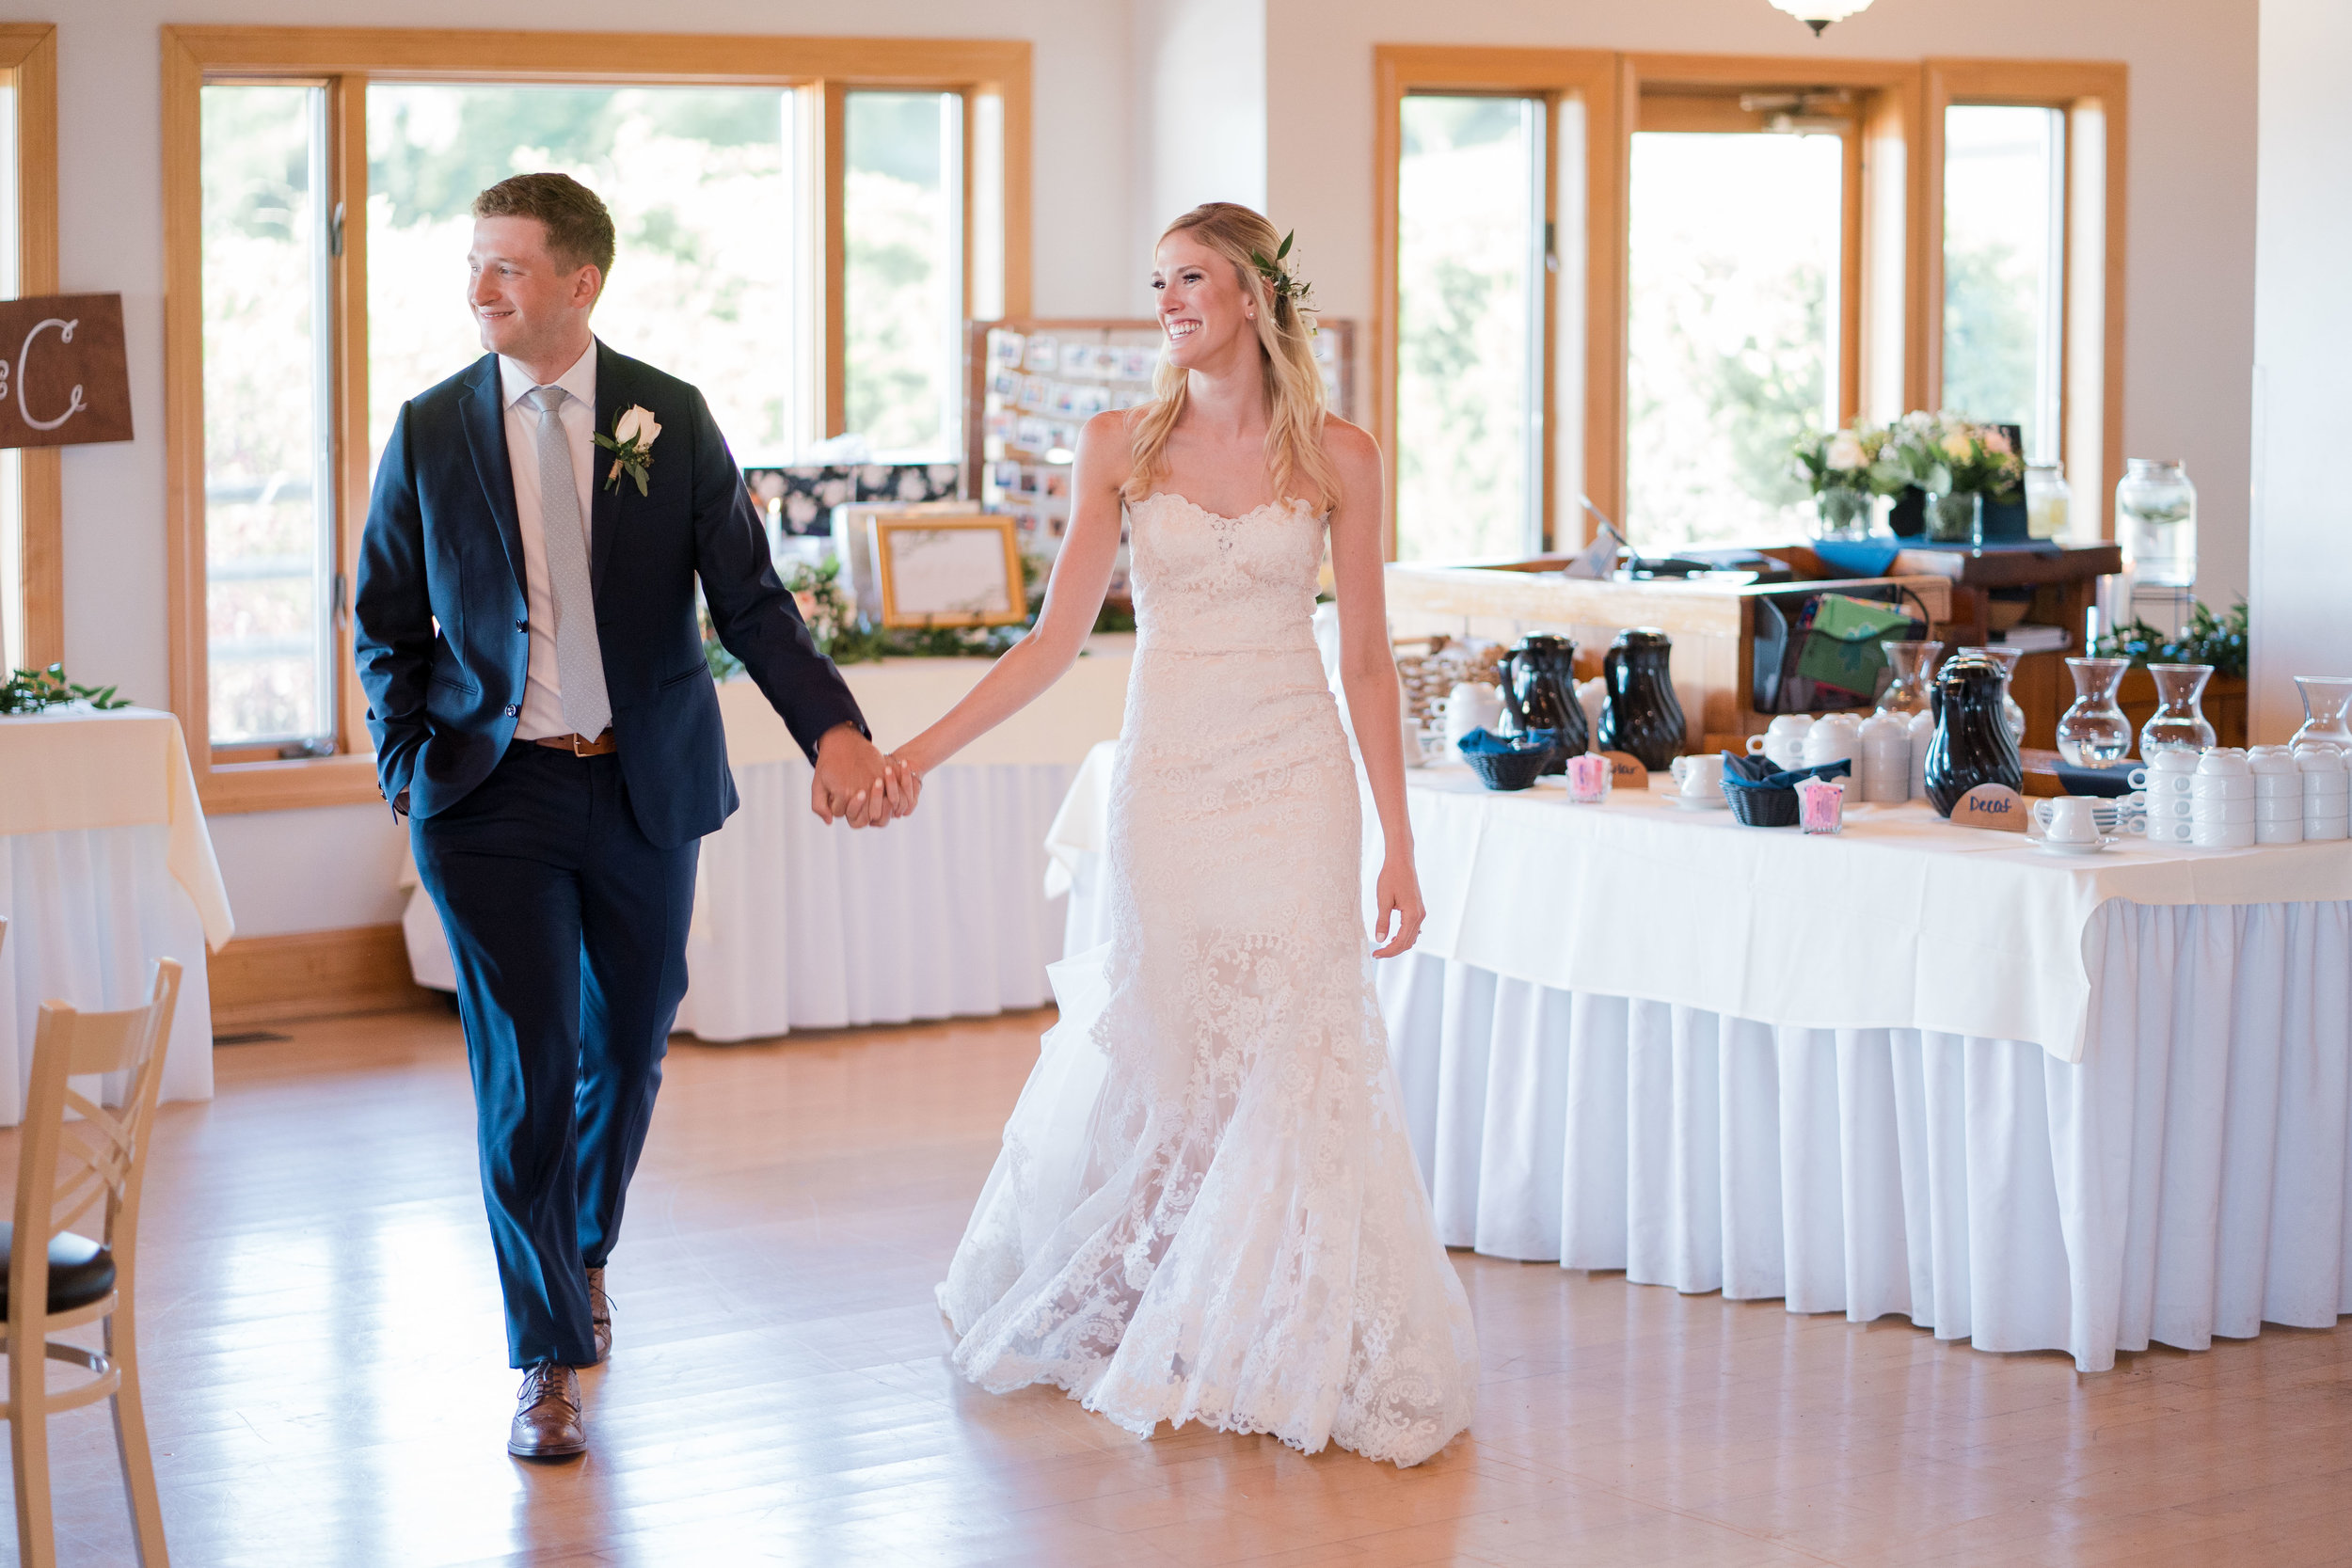 Wedding Photography at Wagner Vineyards Ginny Lee Cafe Finger Lakes by Stefan Ludwig Photography-73.jpg